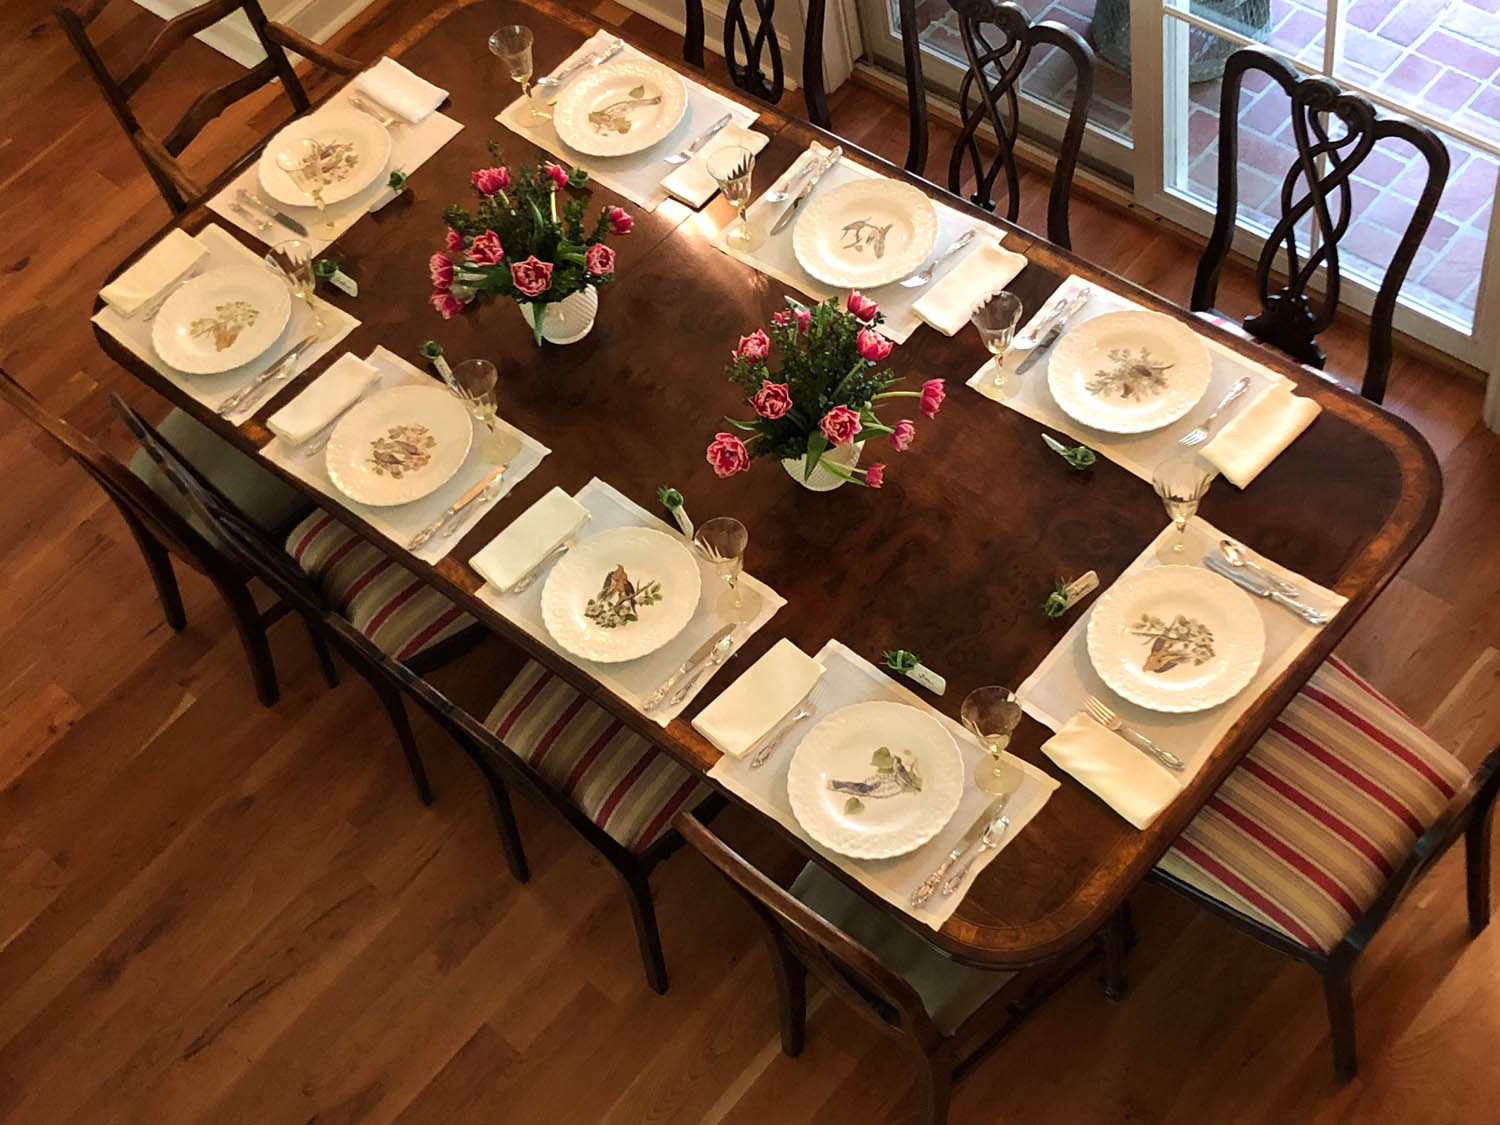 Overhead view of place settings at dining room table for Southern Ladies Lunch